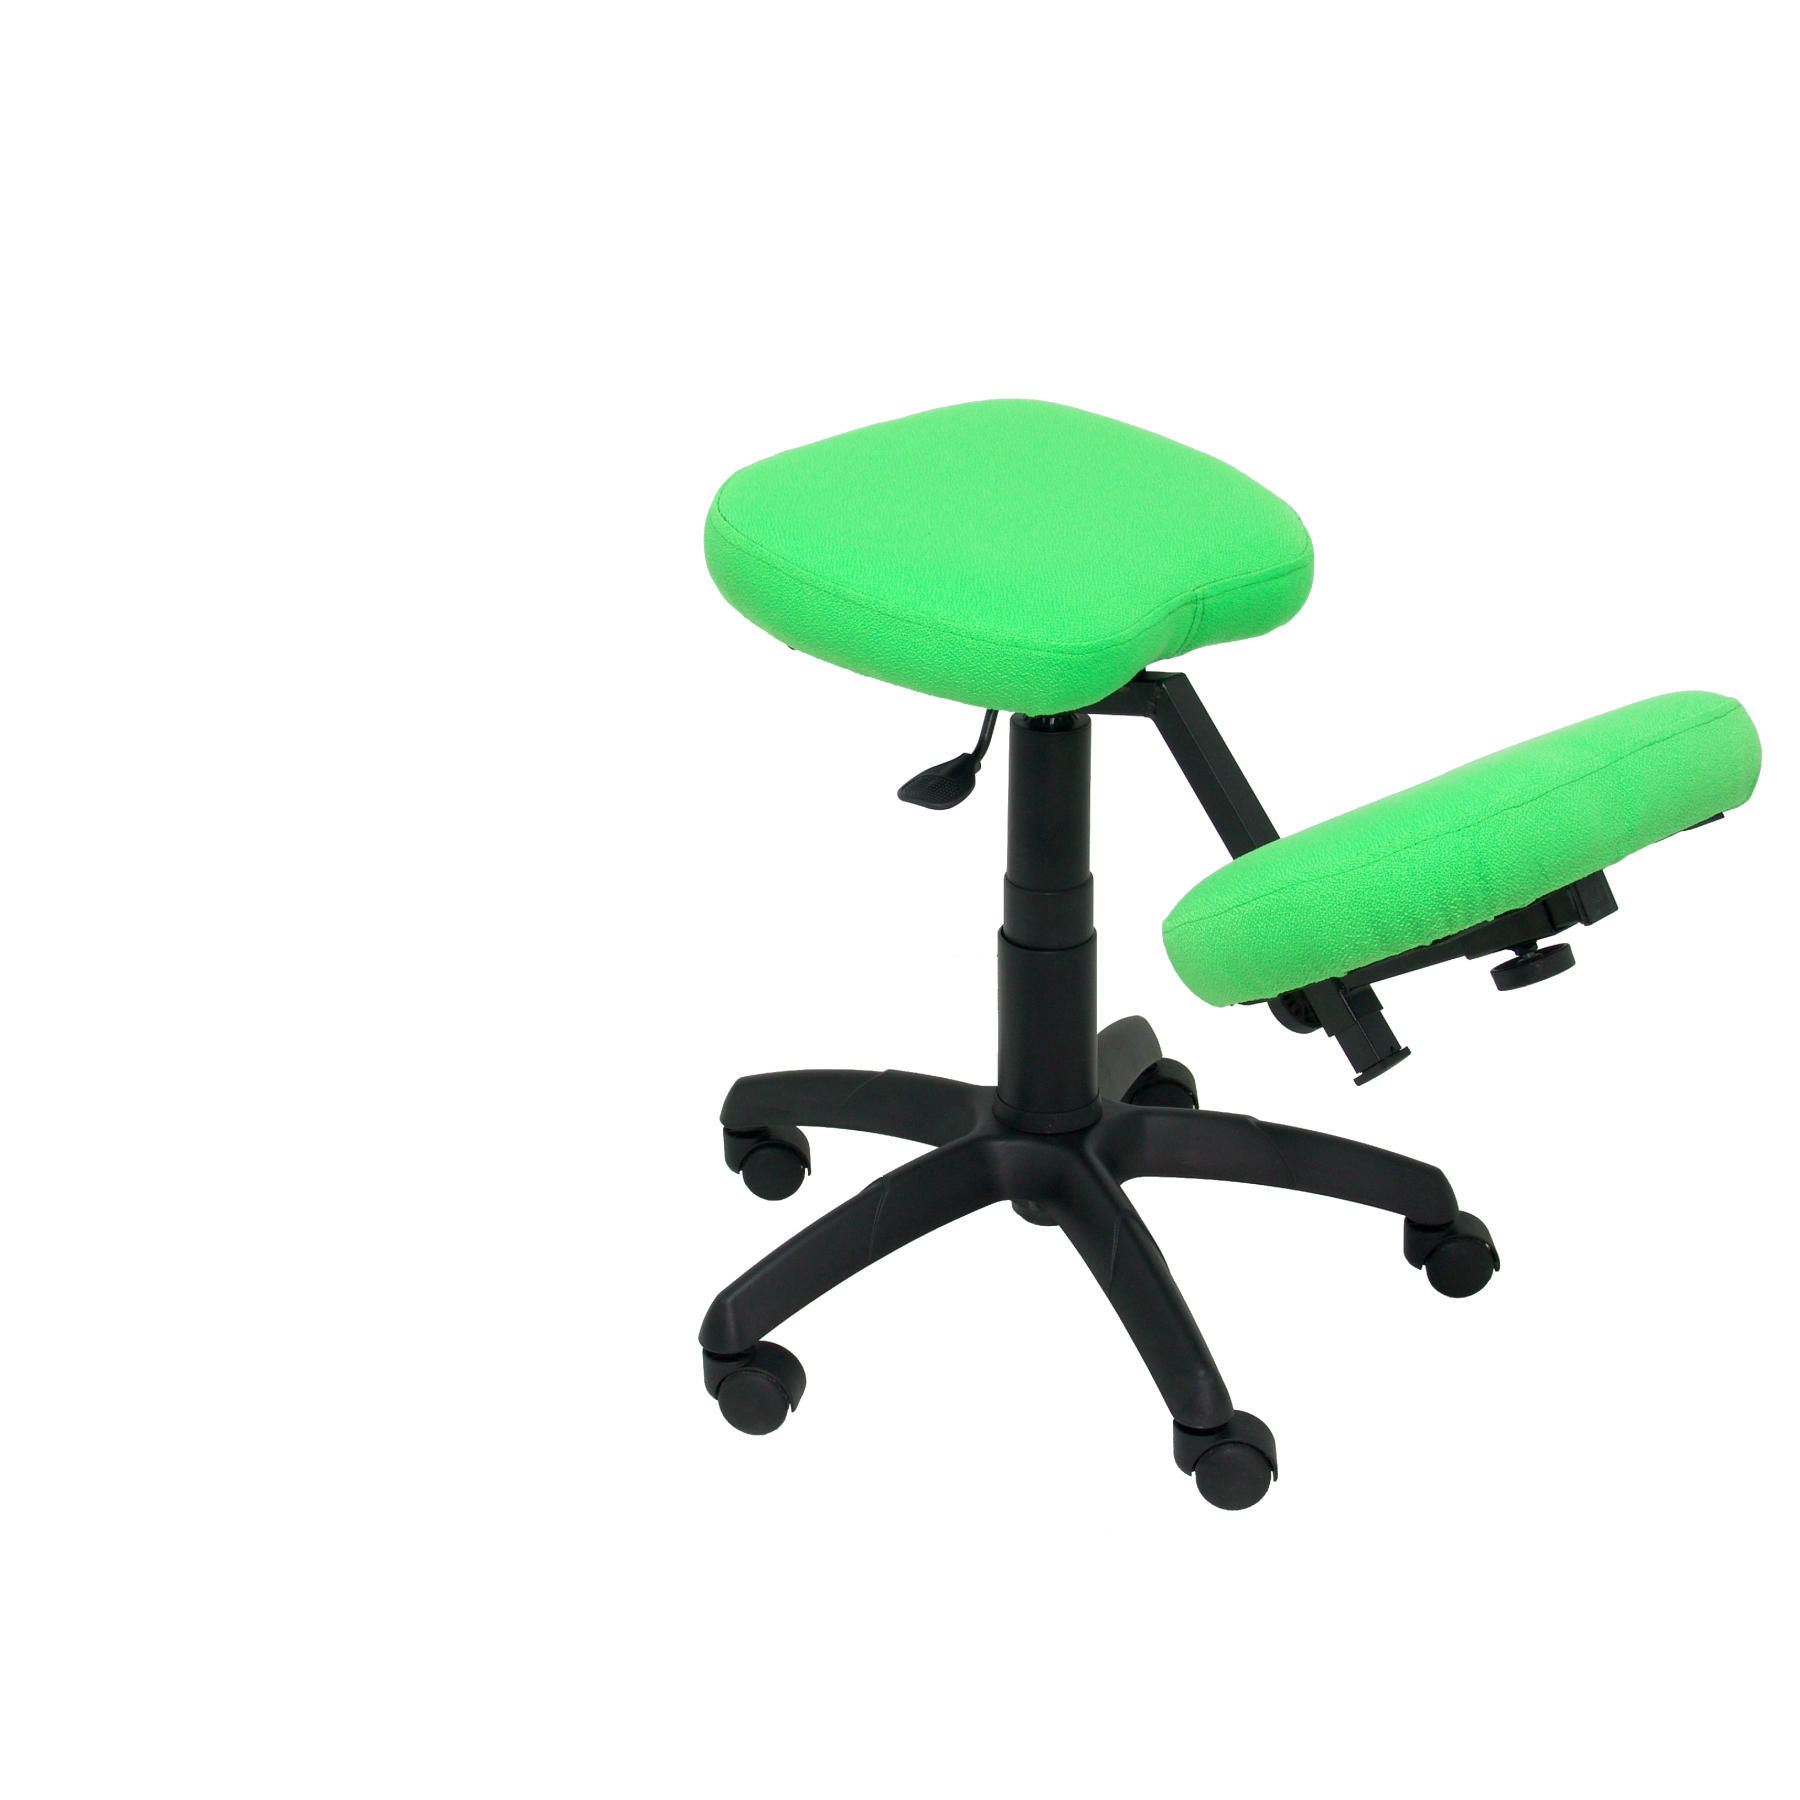 Office's Stool Ergonomic Swivel And Dimmable In High Altitude Up Seat Upholstered In BALI Tissue Color Pistachio (RODILLE